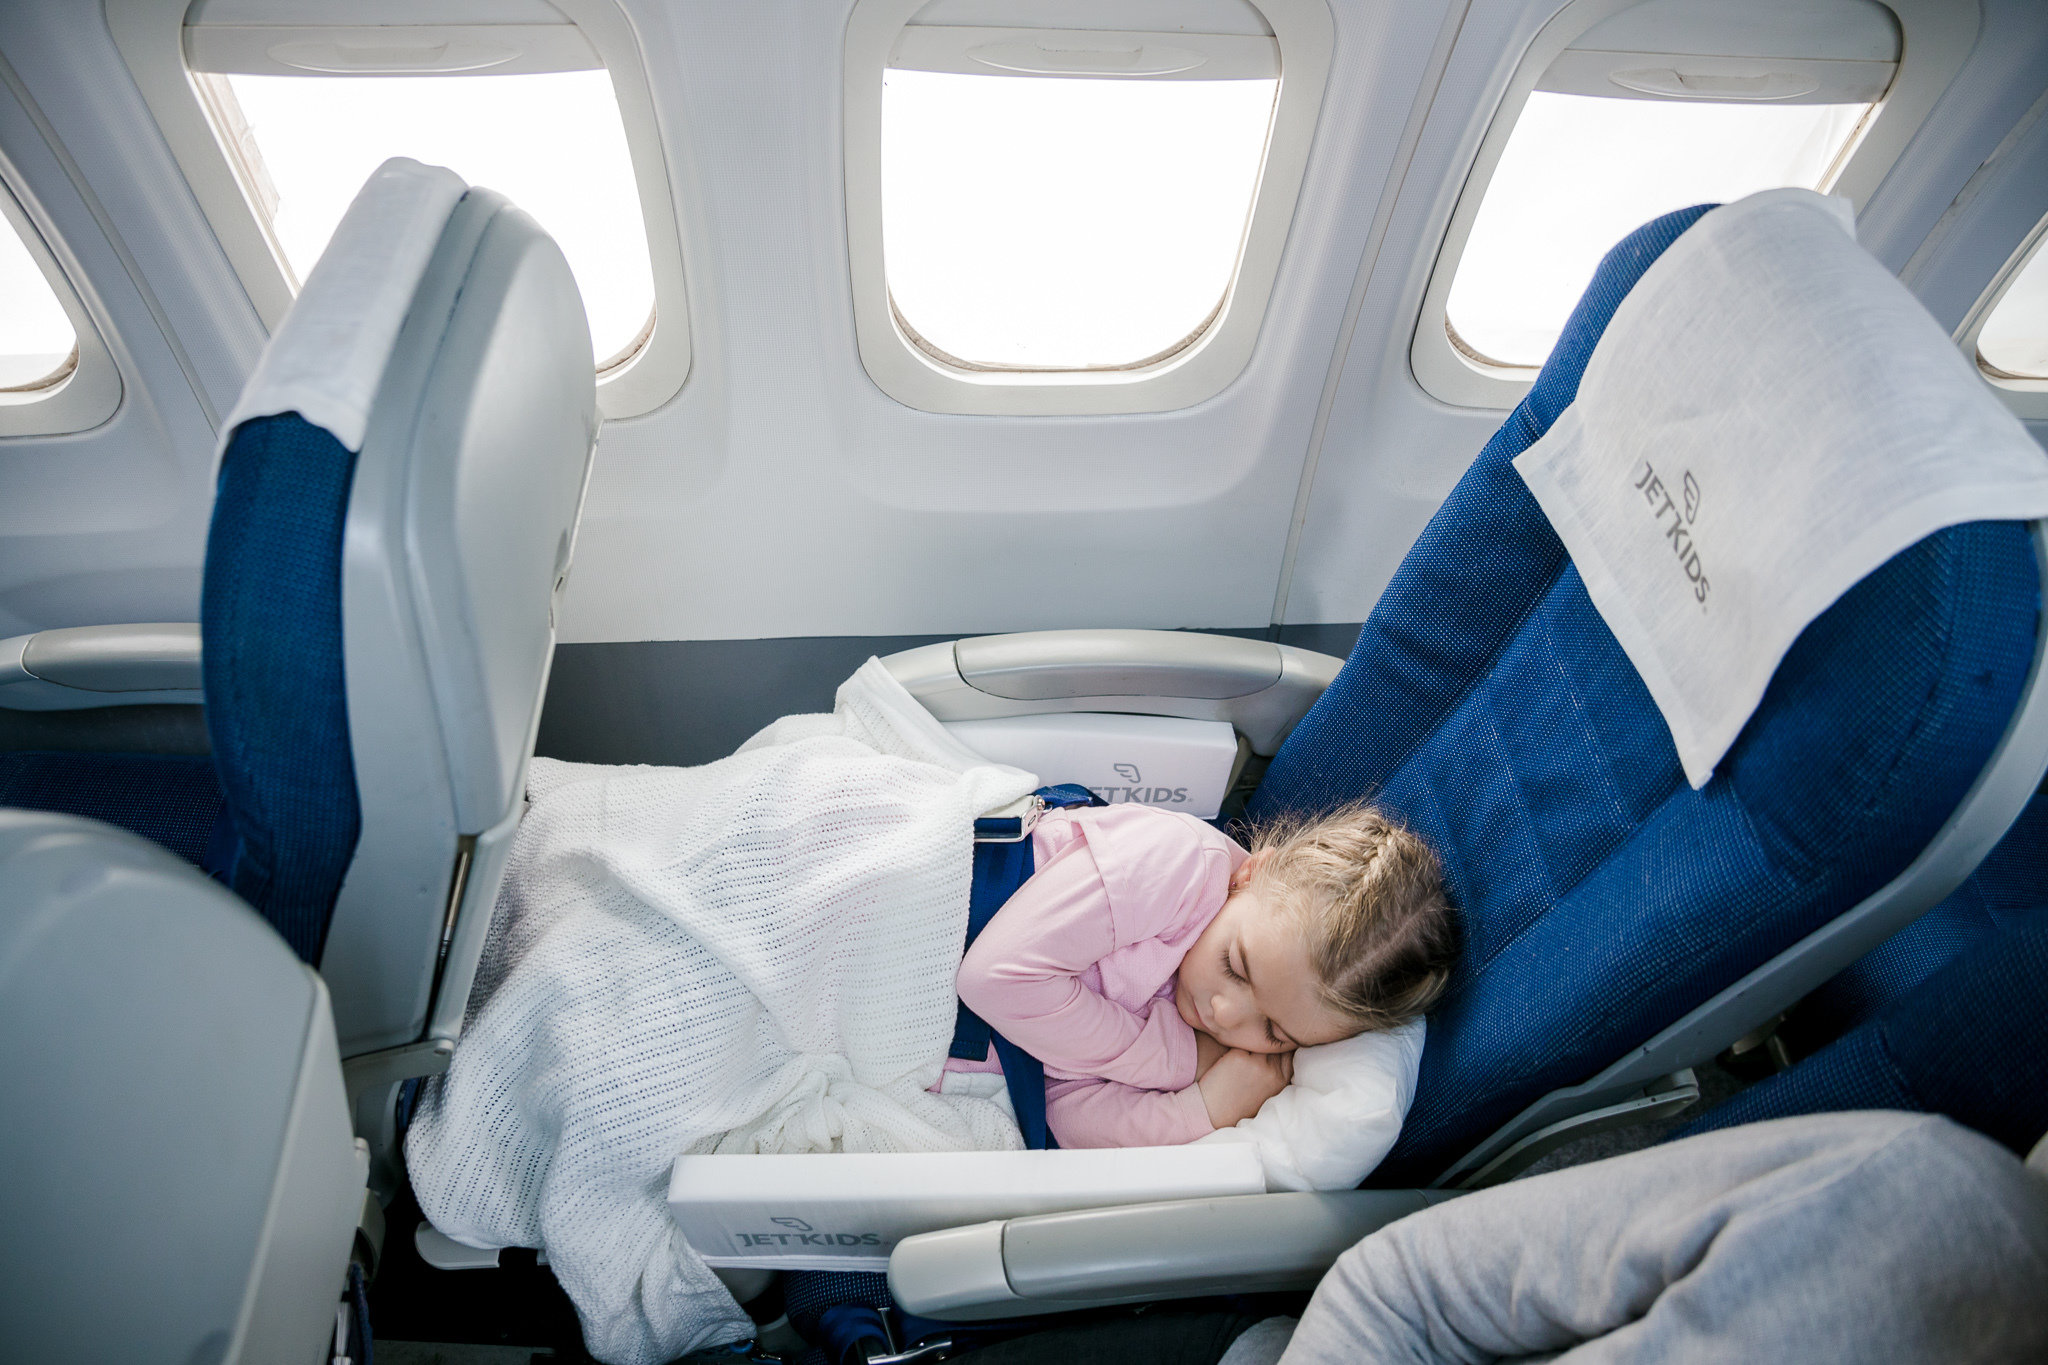 Infant Airplane Seat Air Travel with Baby Made Easy Flyebaby Airplane Baby Comfort System